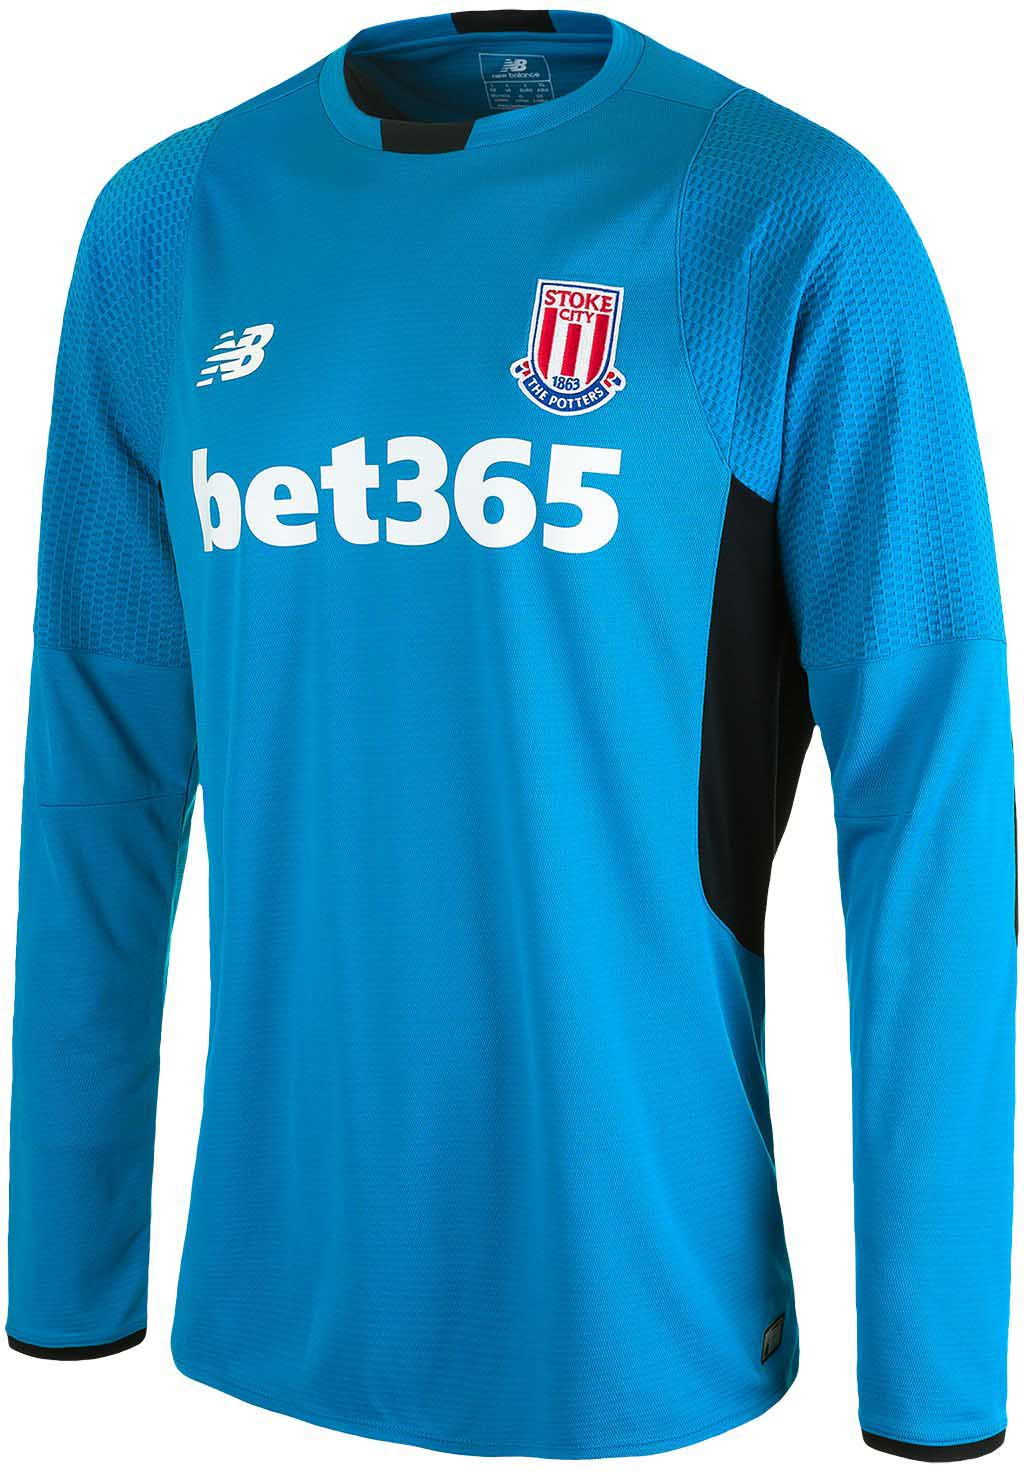 NEW BALANCE STOKE CITY 2015-16 GOALKEEPER KITS 01f45da6f